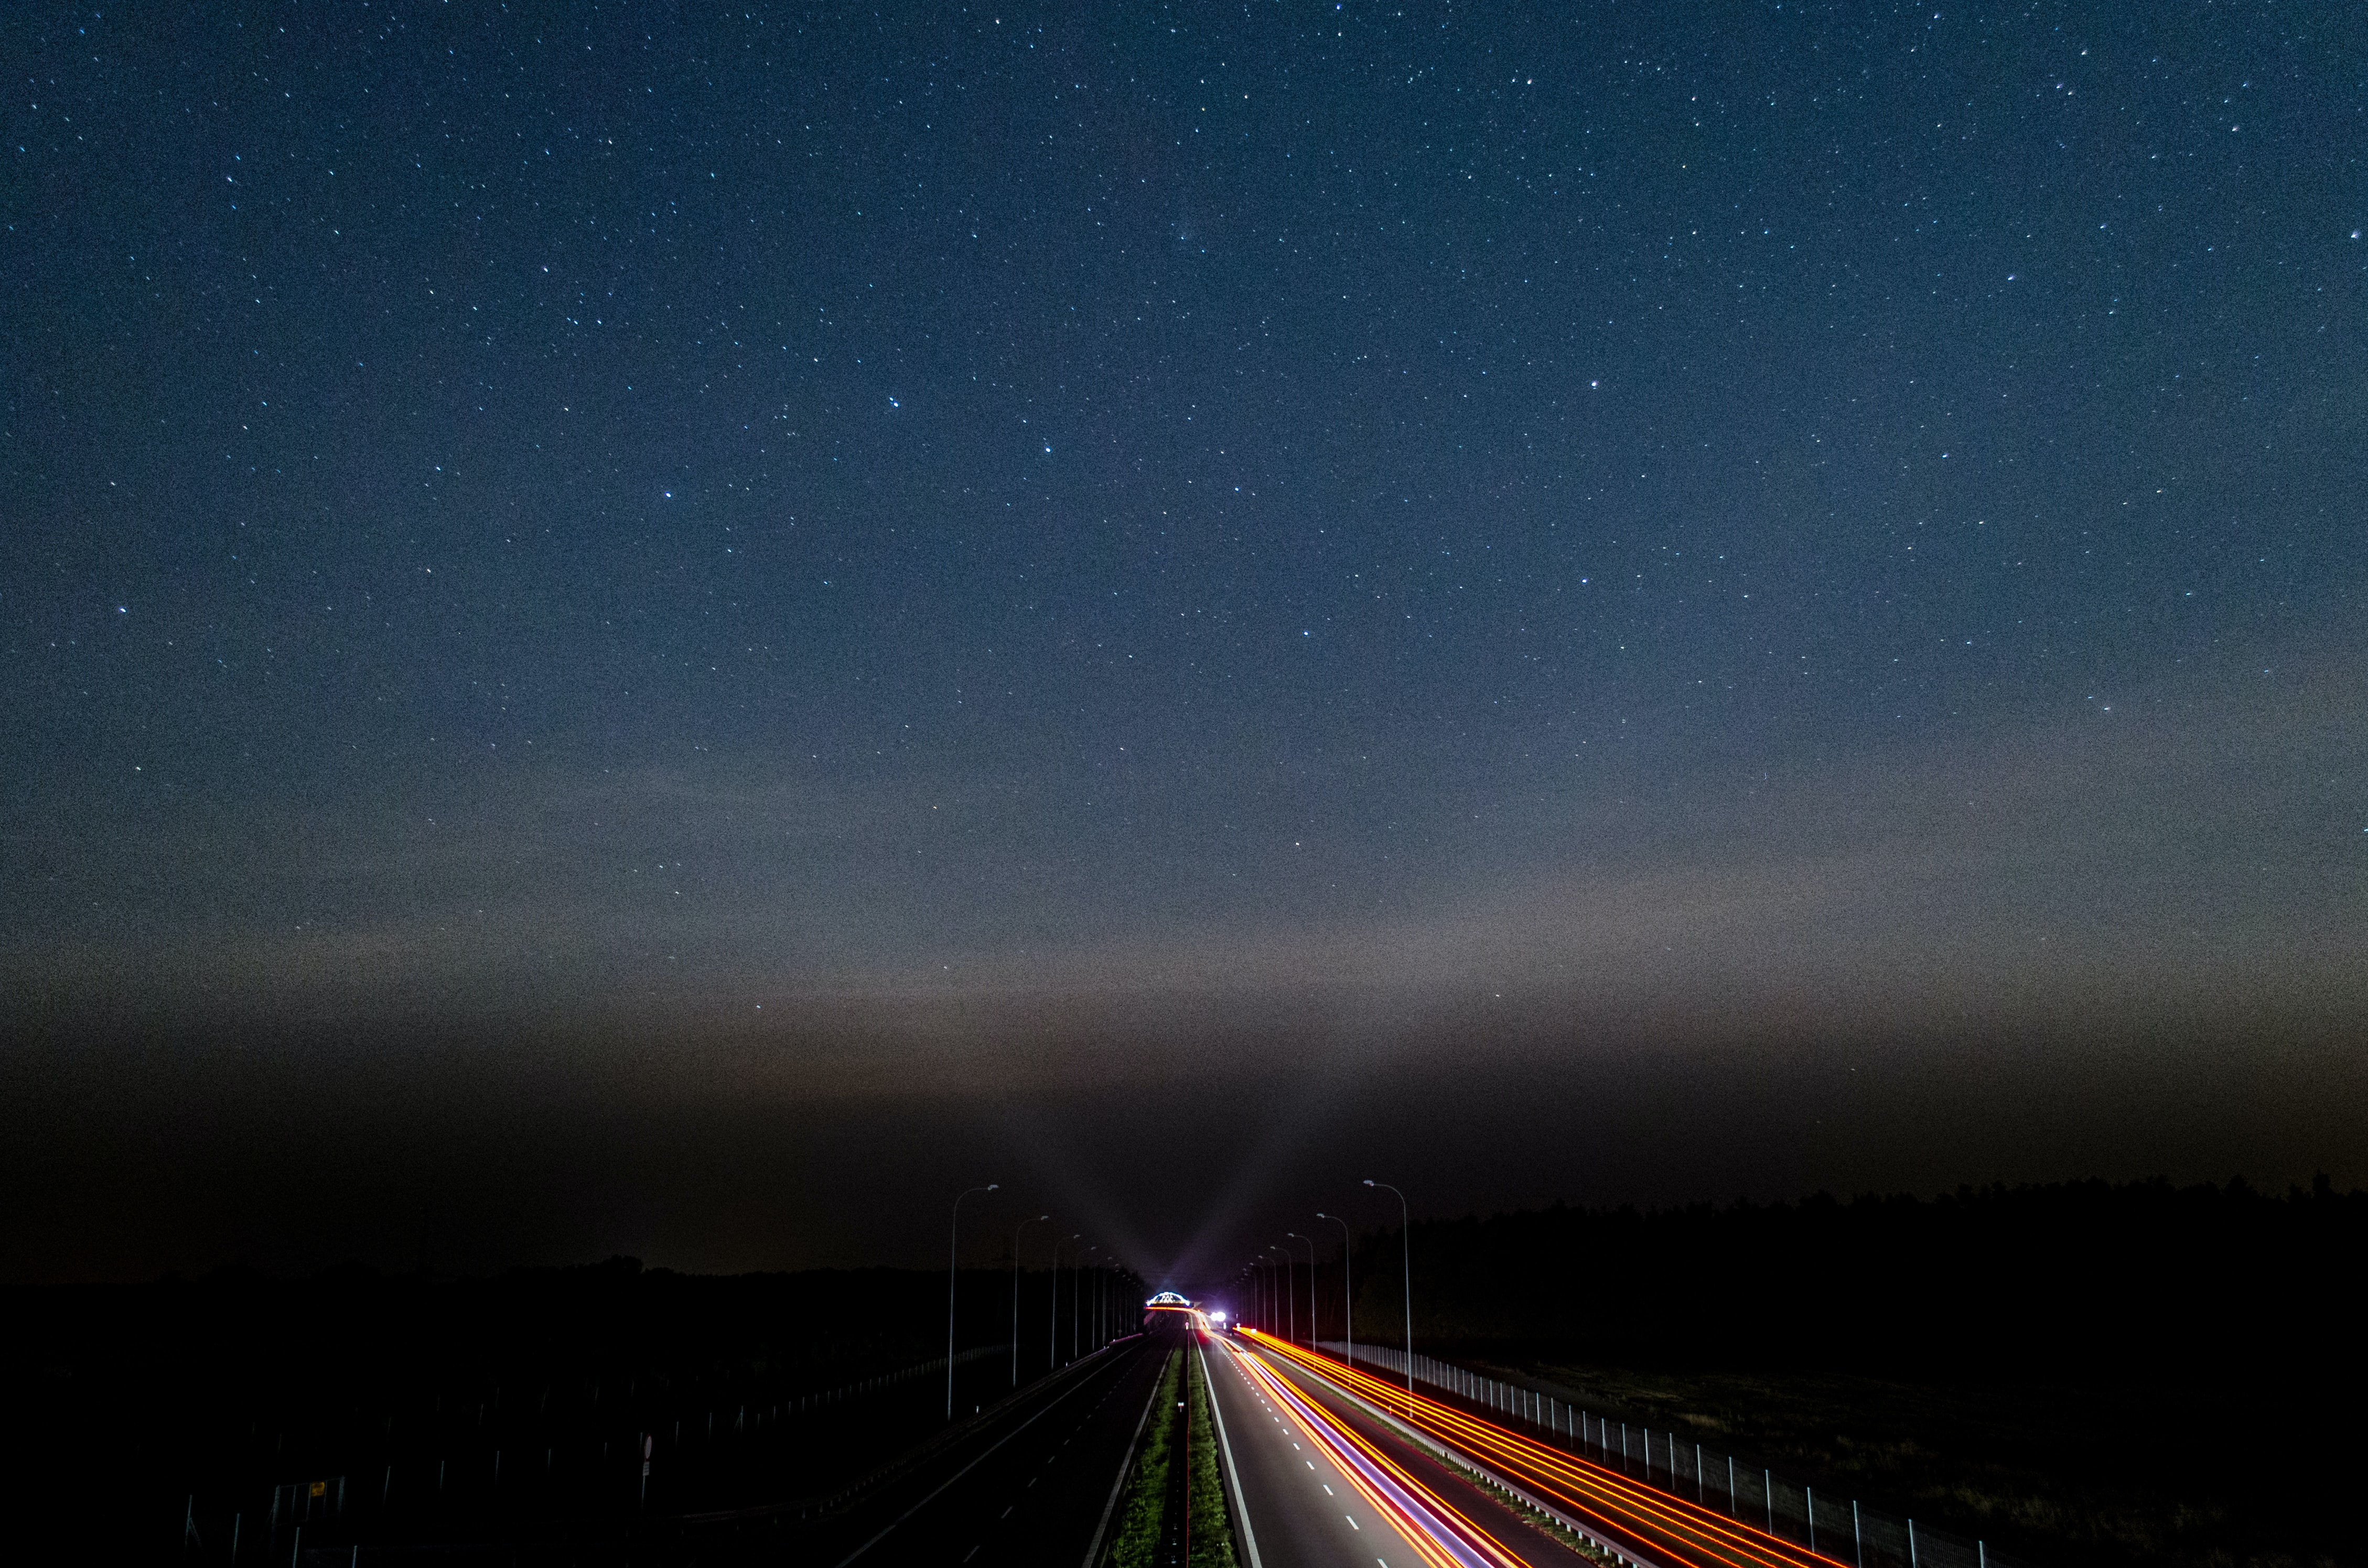 A drone's perspective of the starlit night sky, with lights reflecting from the traffic below